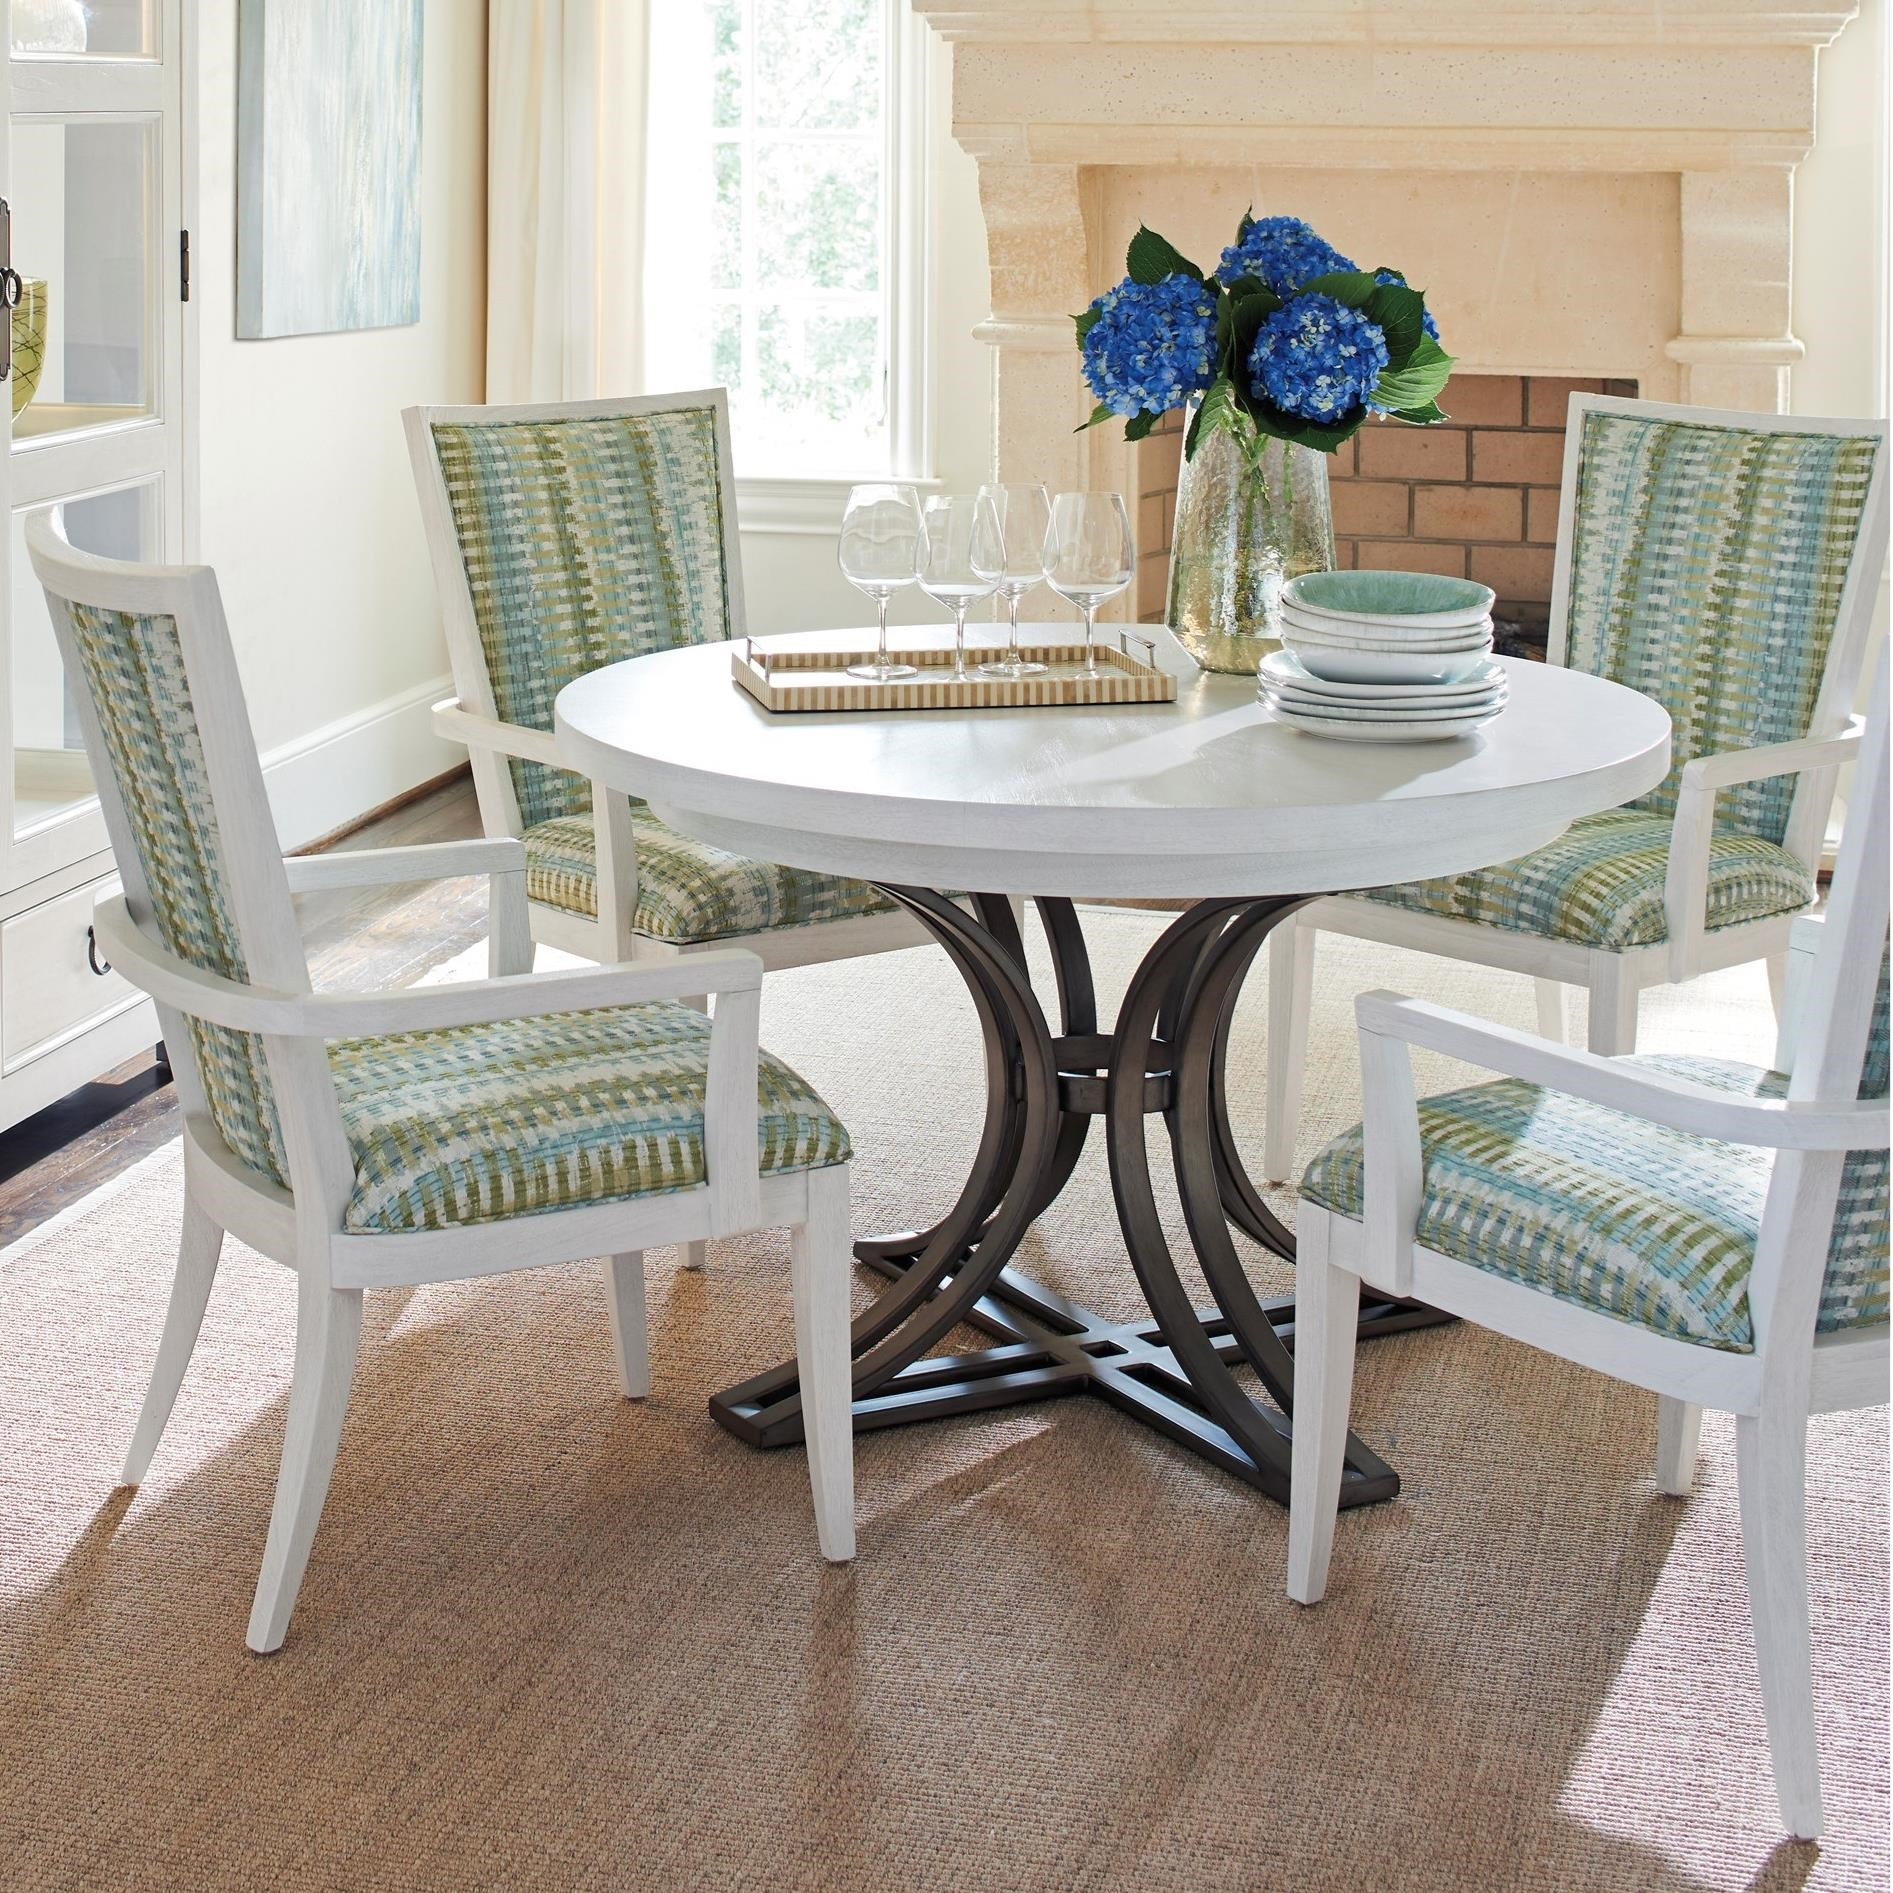 tommy bahama dining room table